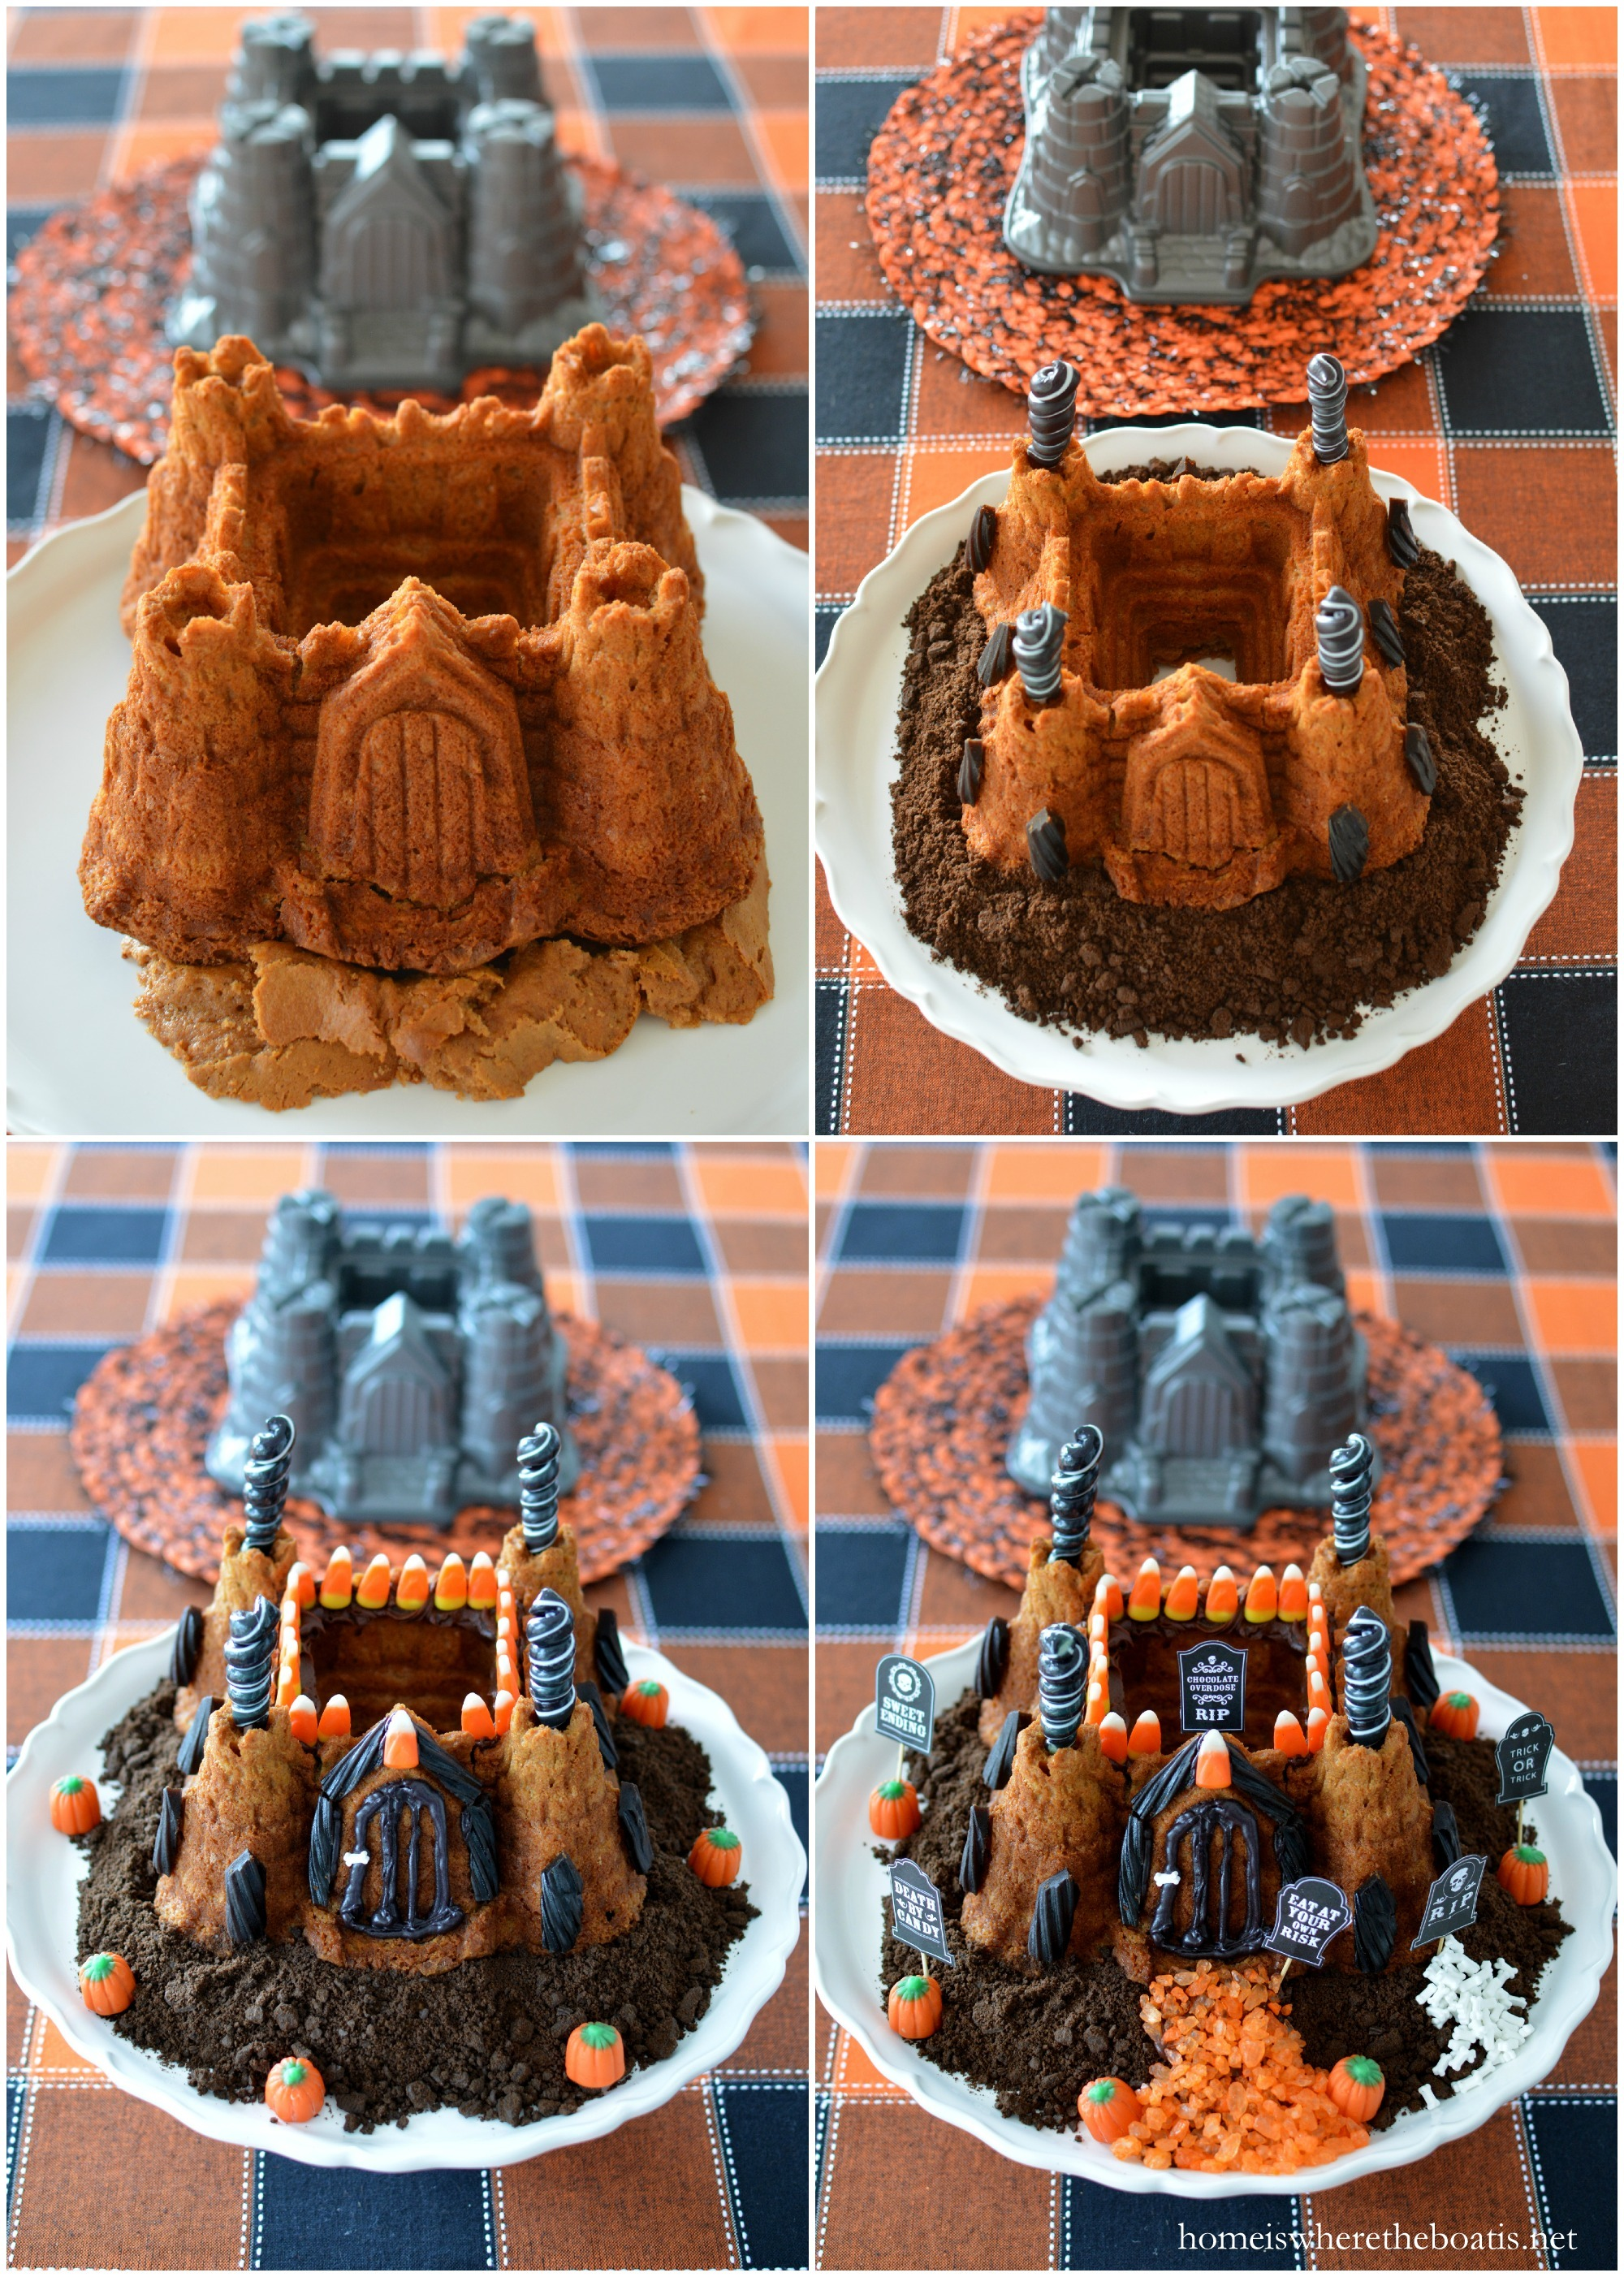 Eat At Your Own Risk A Haunted Castle Cake Home Is